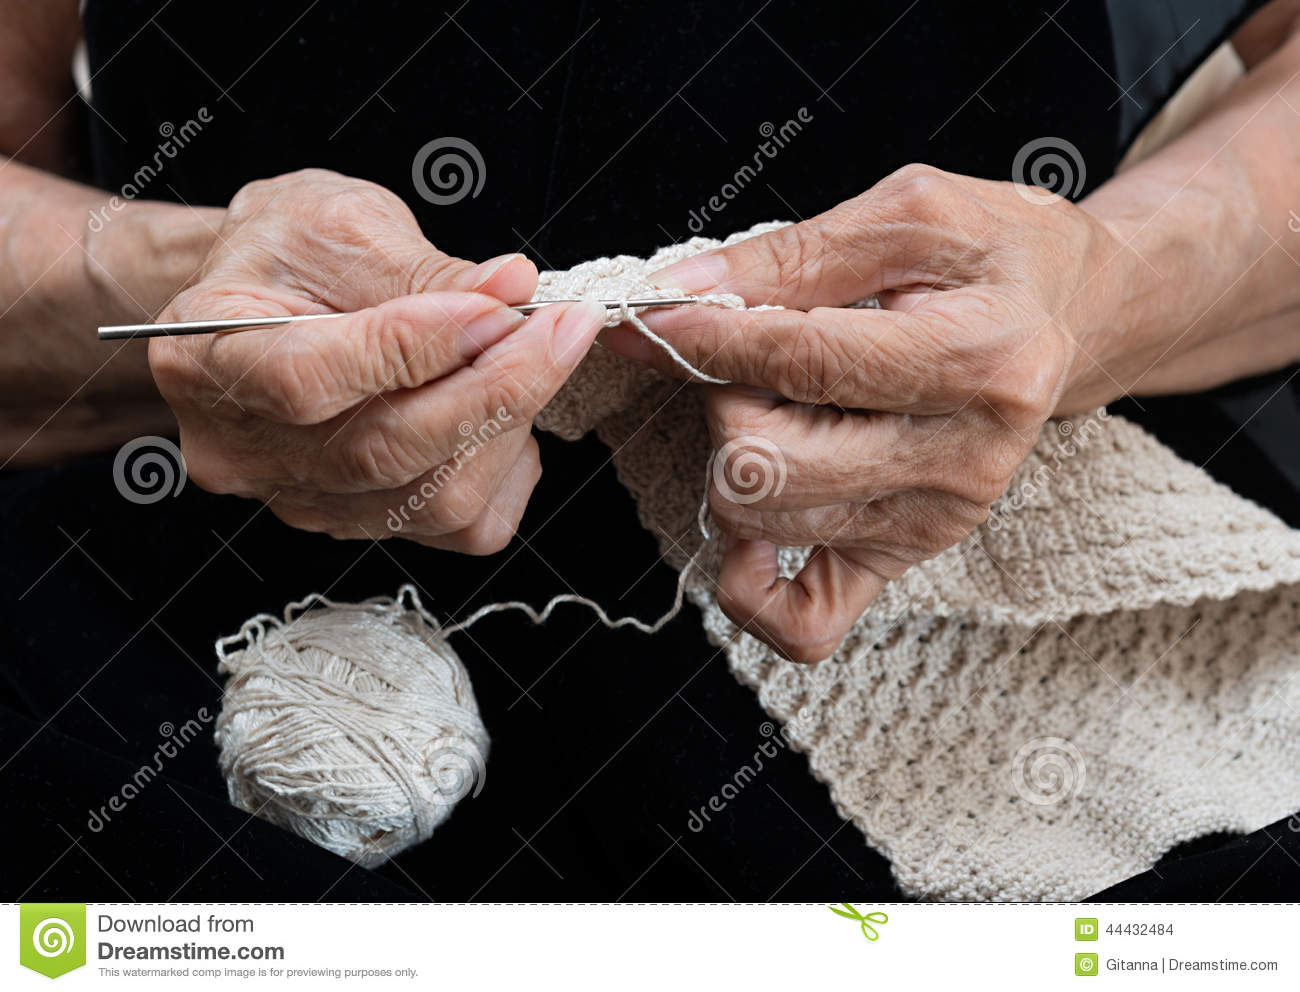 Crocheting With Hands : Older Woman Crocheting Stock Photo - Image: 44432484